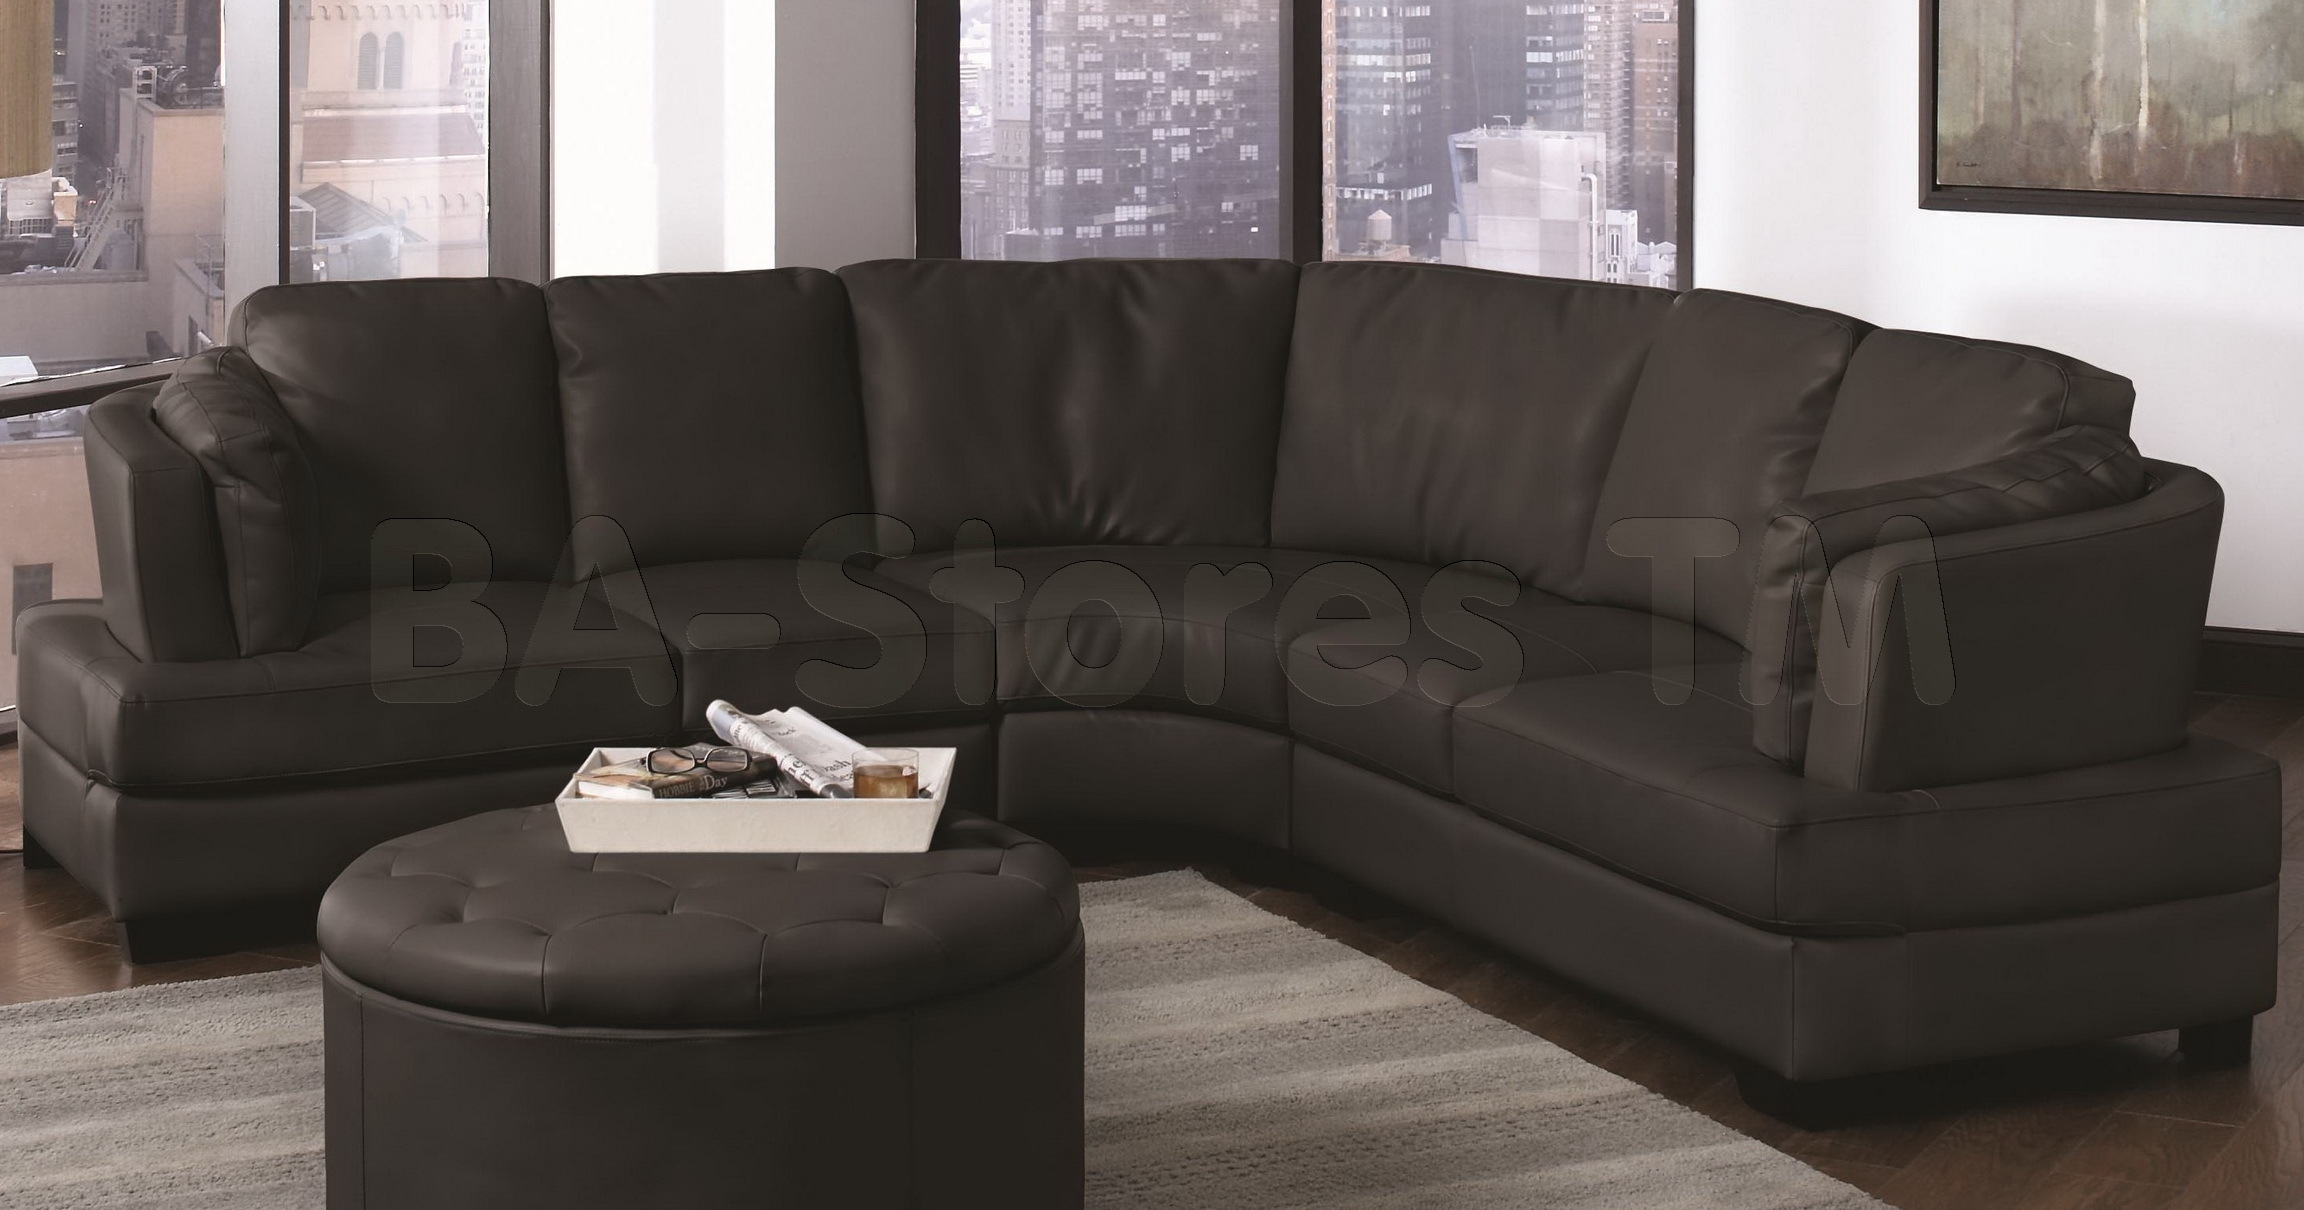 Trend Circular Sectional Sofa 57 With Additional Living Room Sofa For Circular Sectional Sofas (Image 10 of 10)